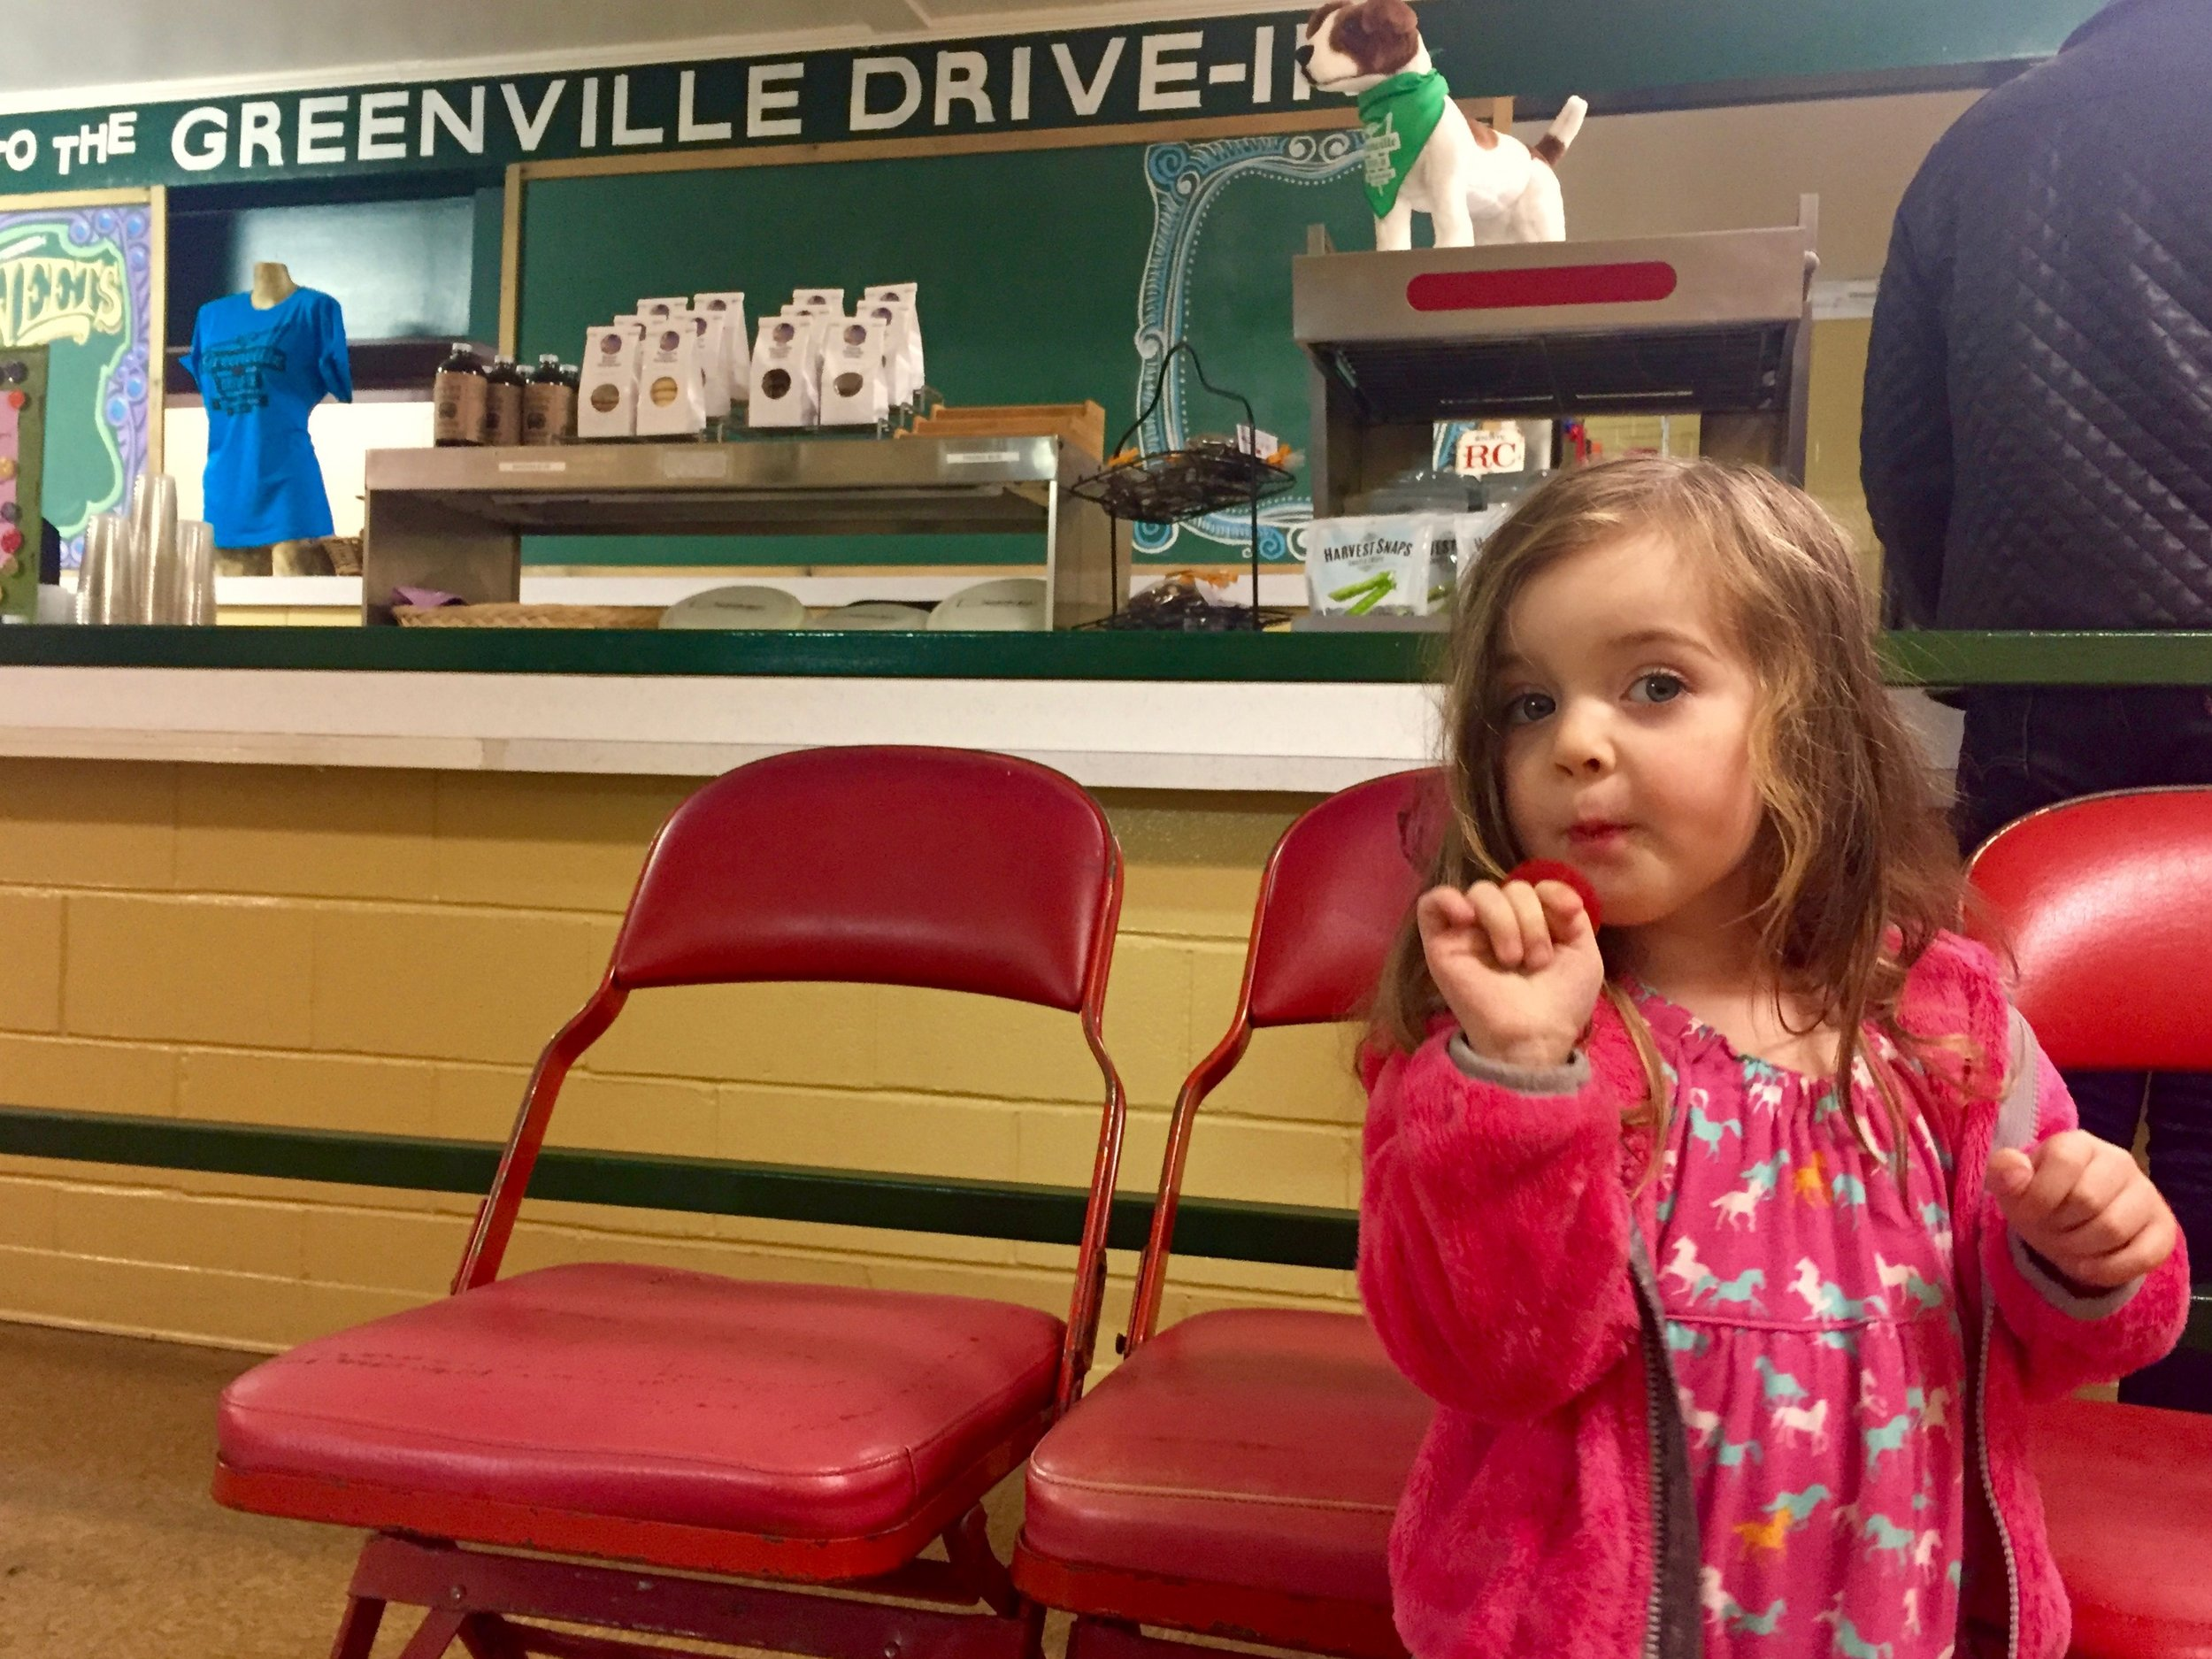 In the Greenville Drive-in concession area, Ramona enjoys a Ring Pop.